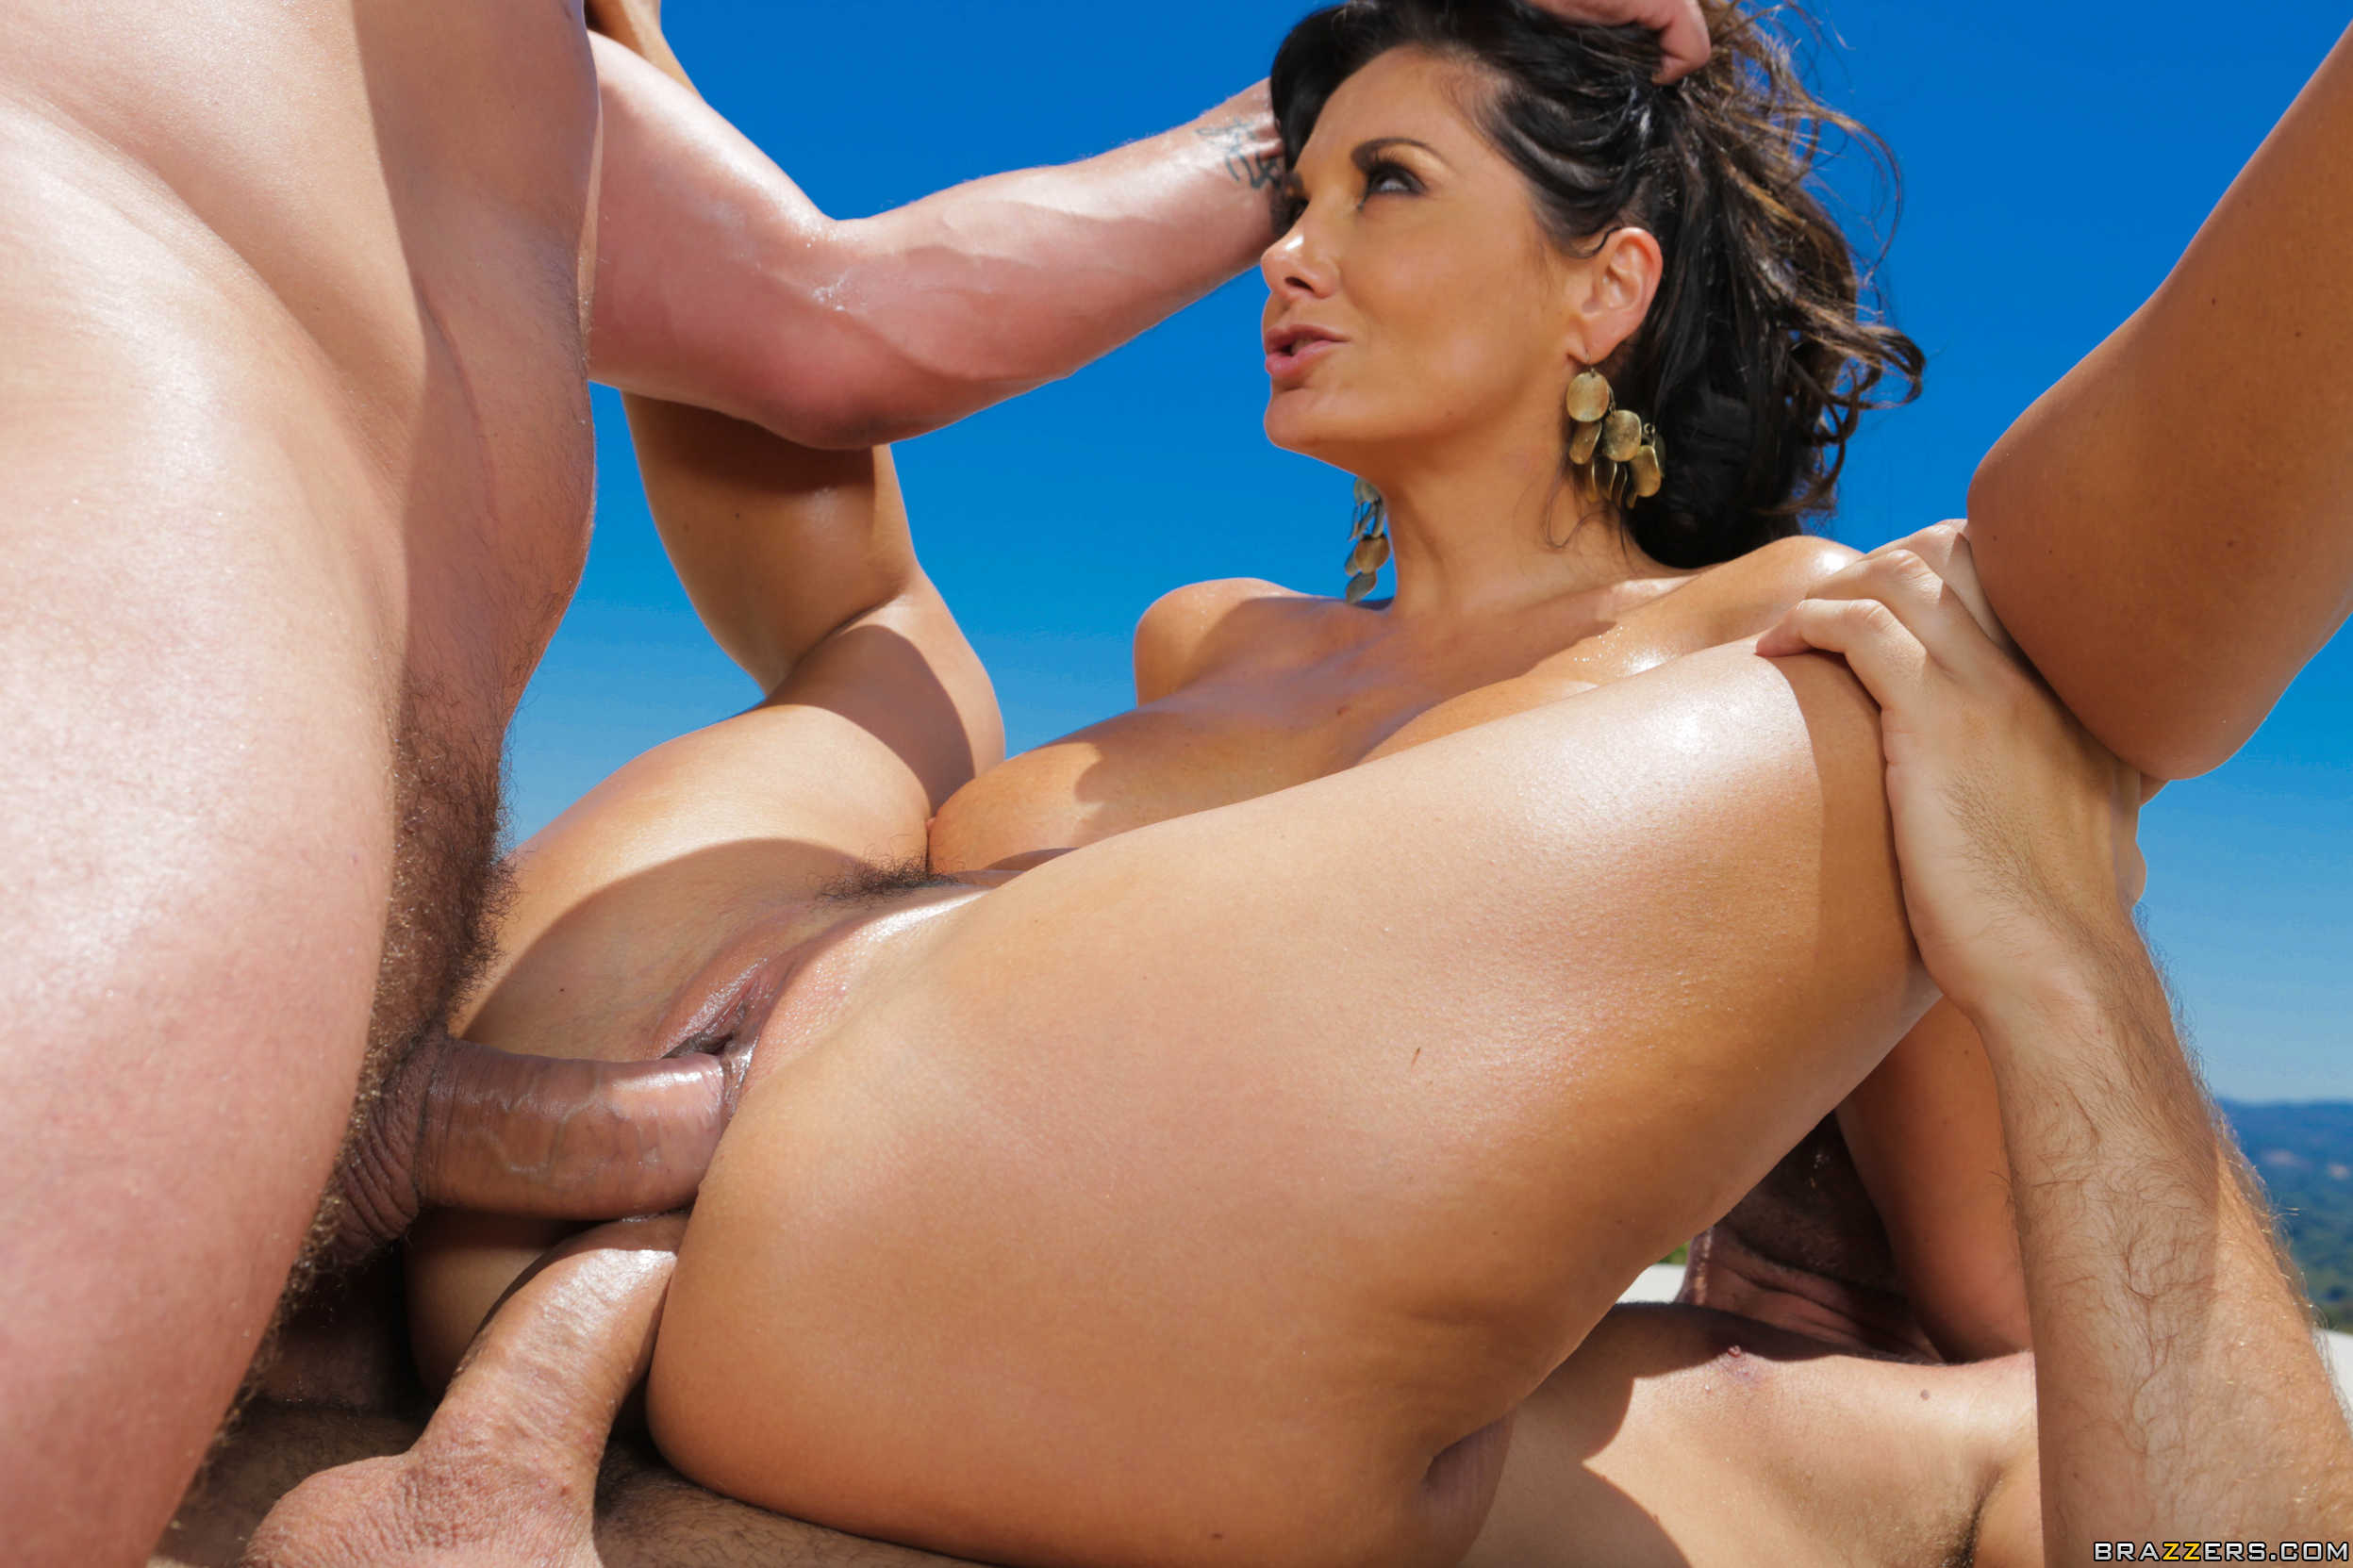 Another ava devine threesome